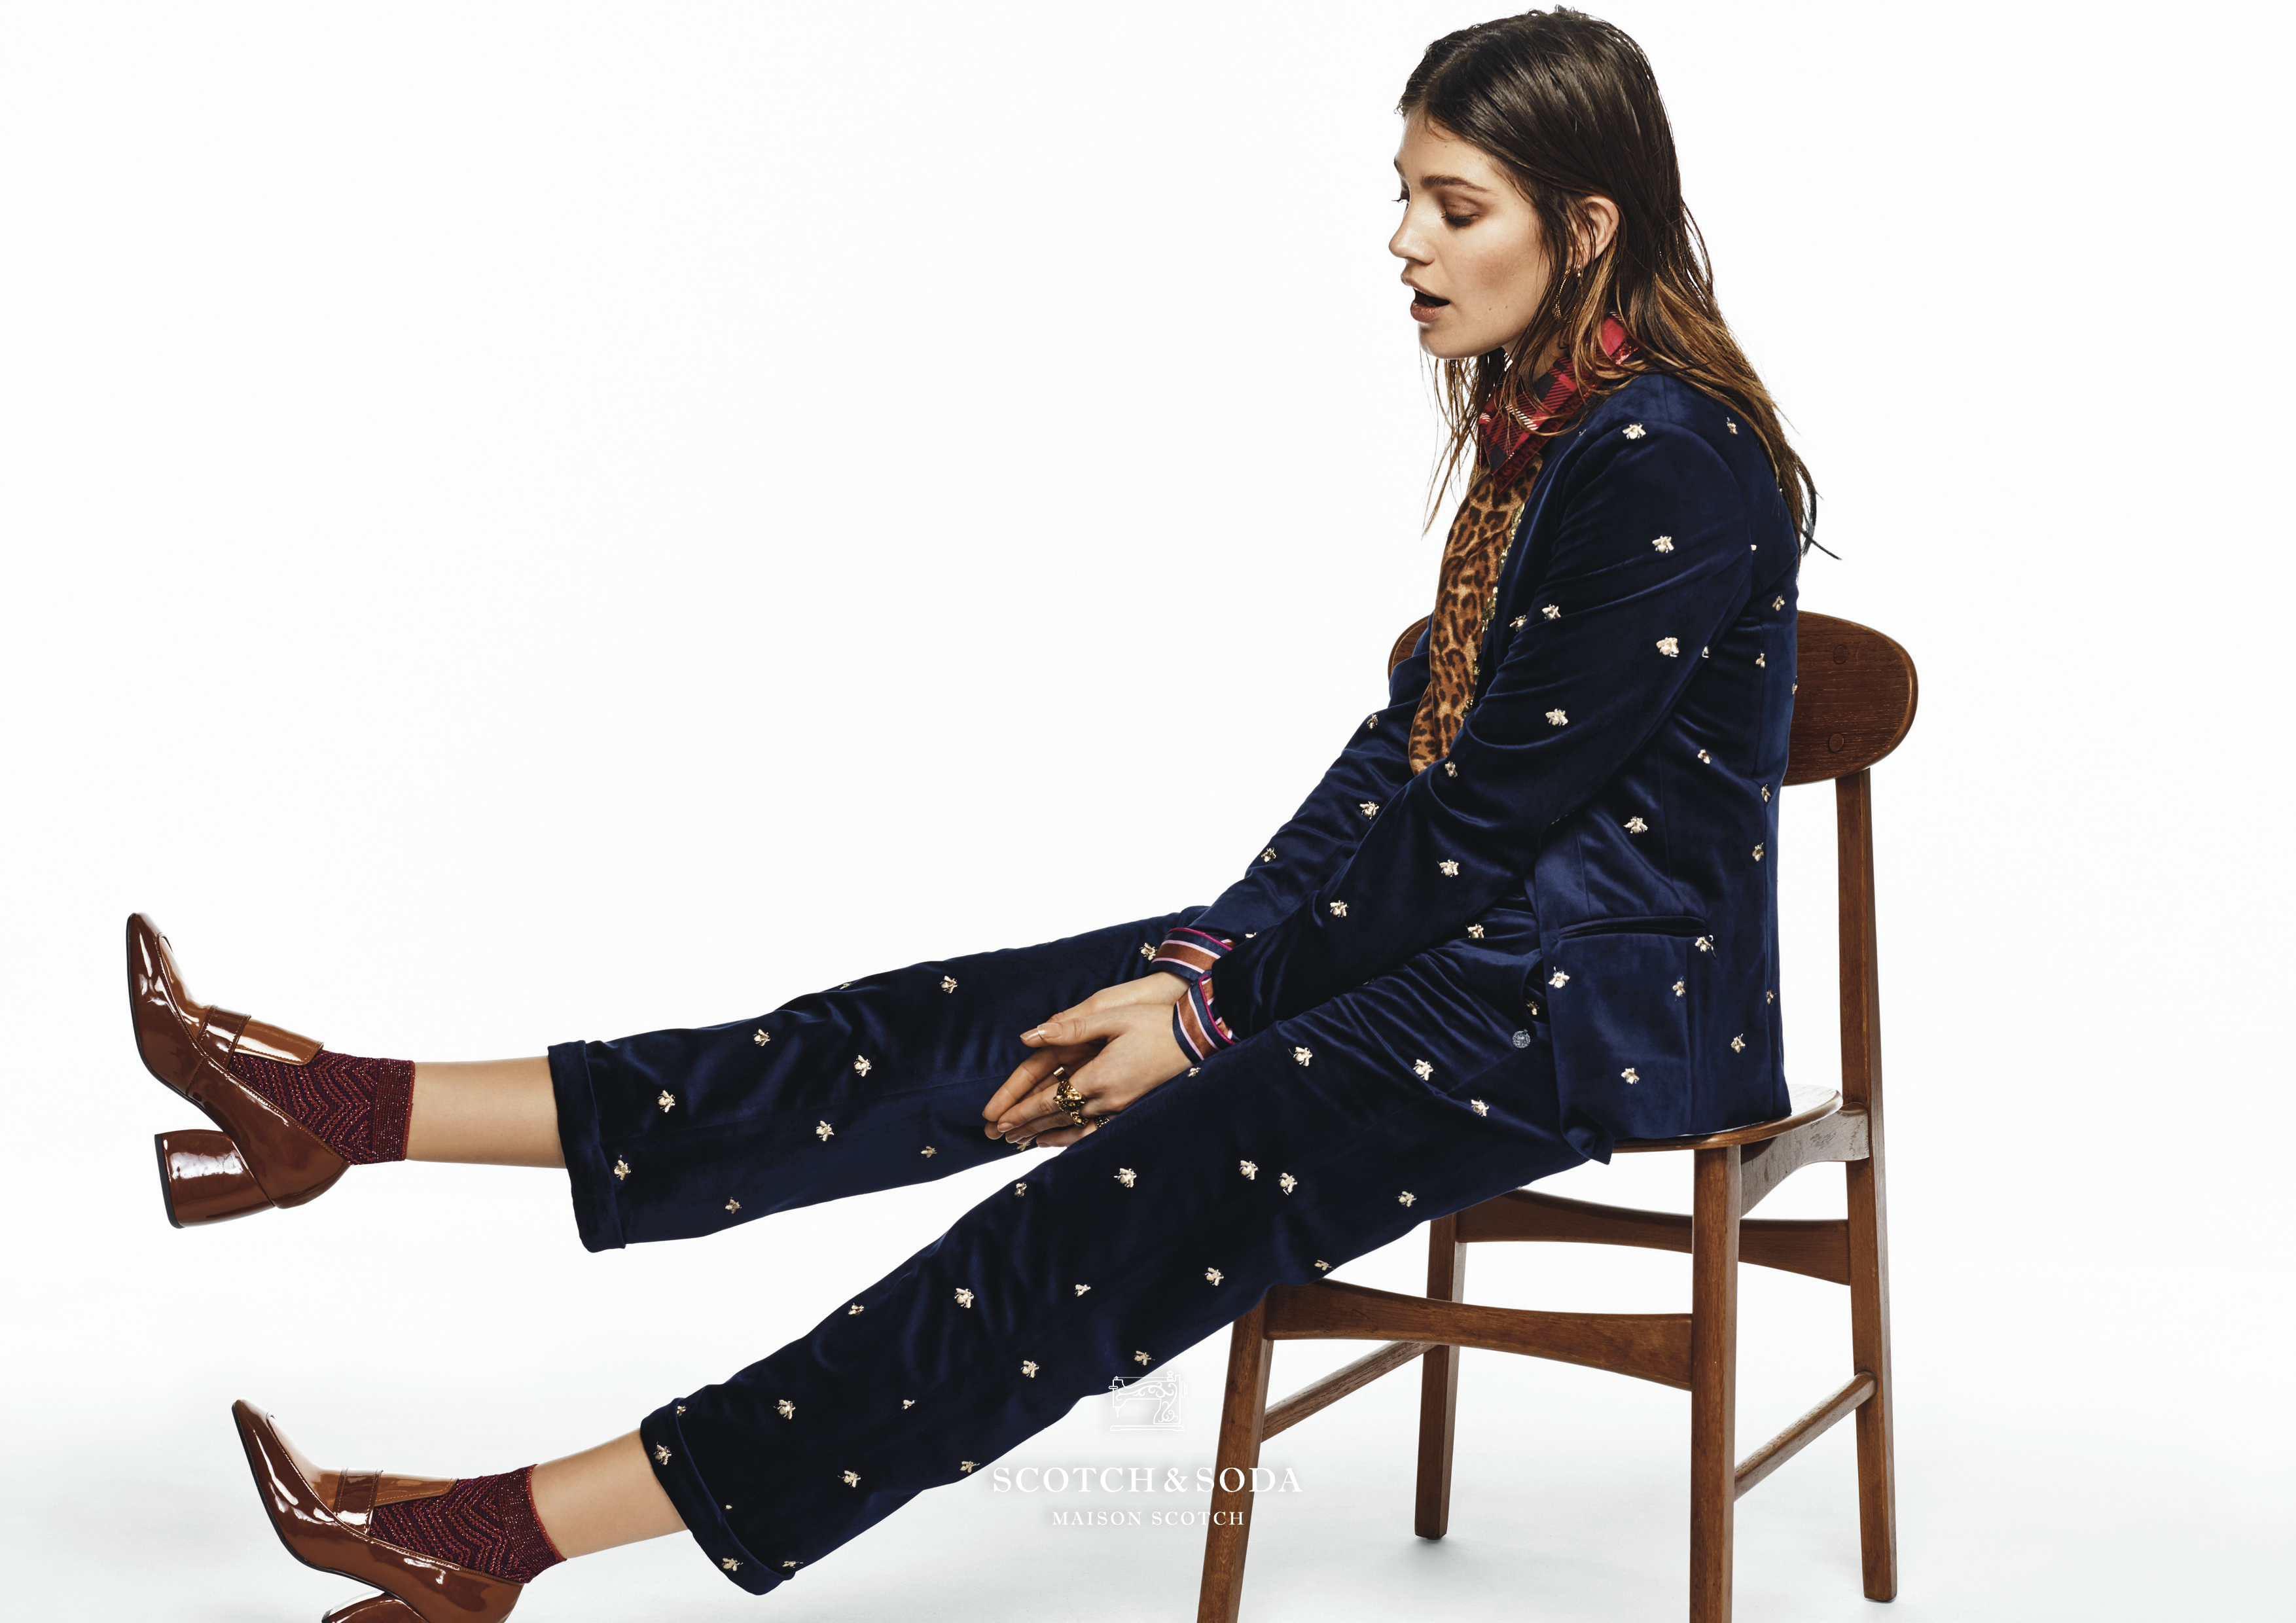 Nautical prints find their way in Scotch & Soda's winter collection